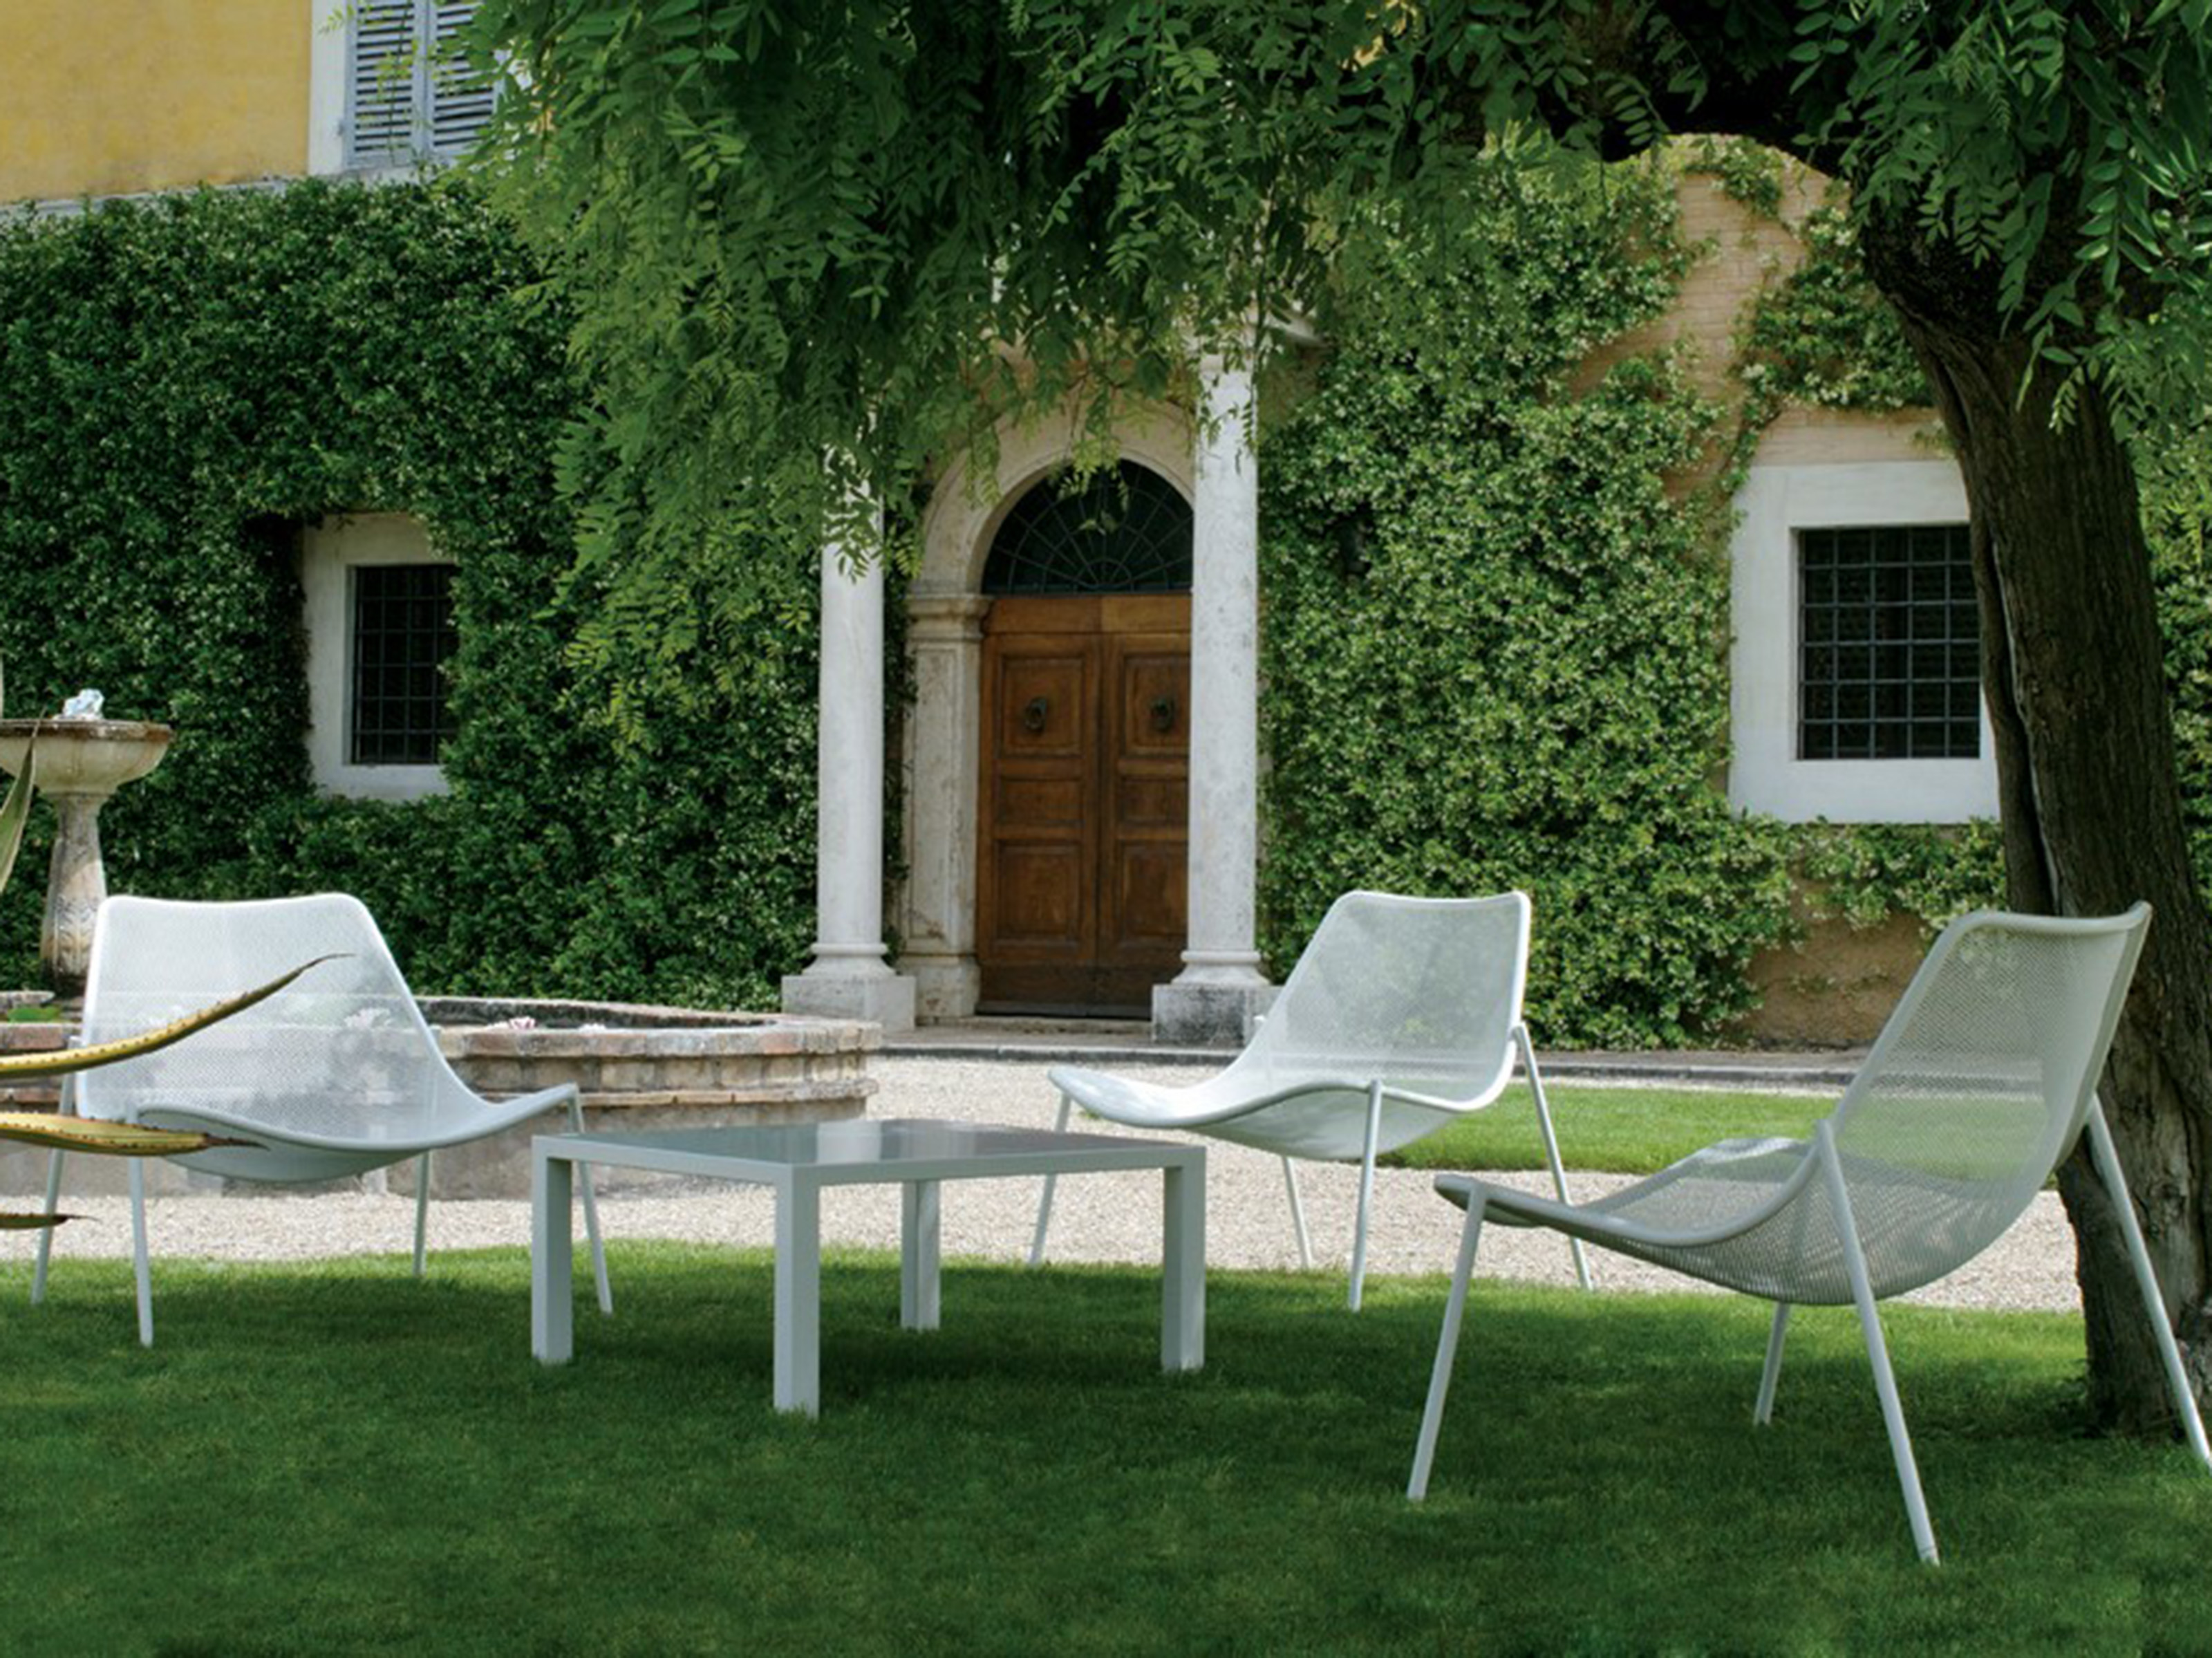 Emu Round Designer Outdoor Seating by Coalesse Steelcase